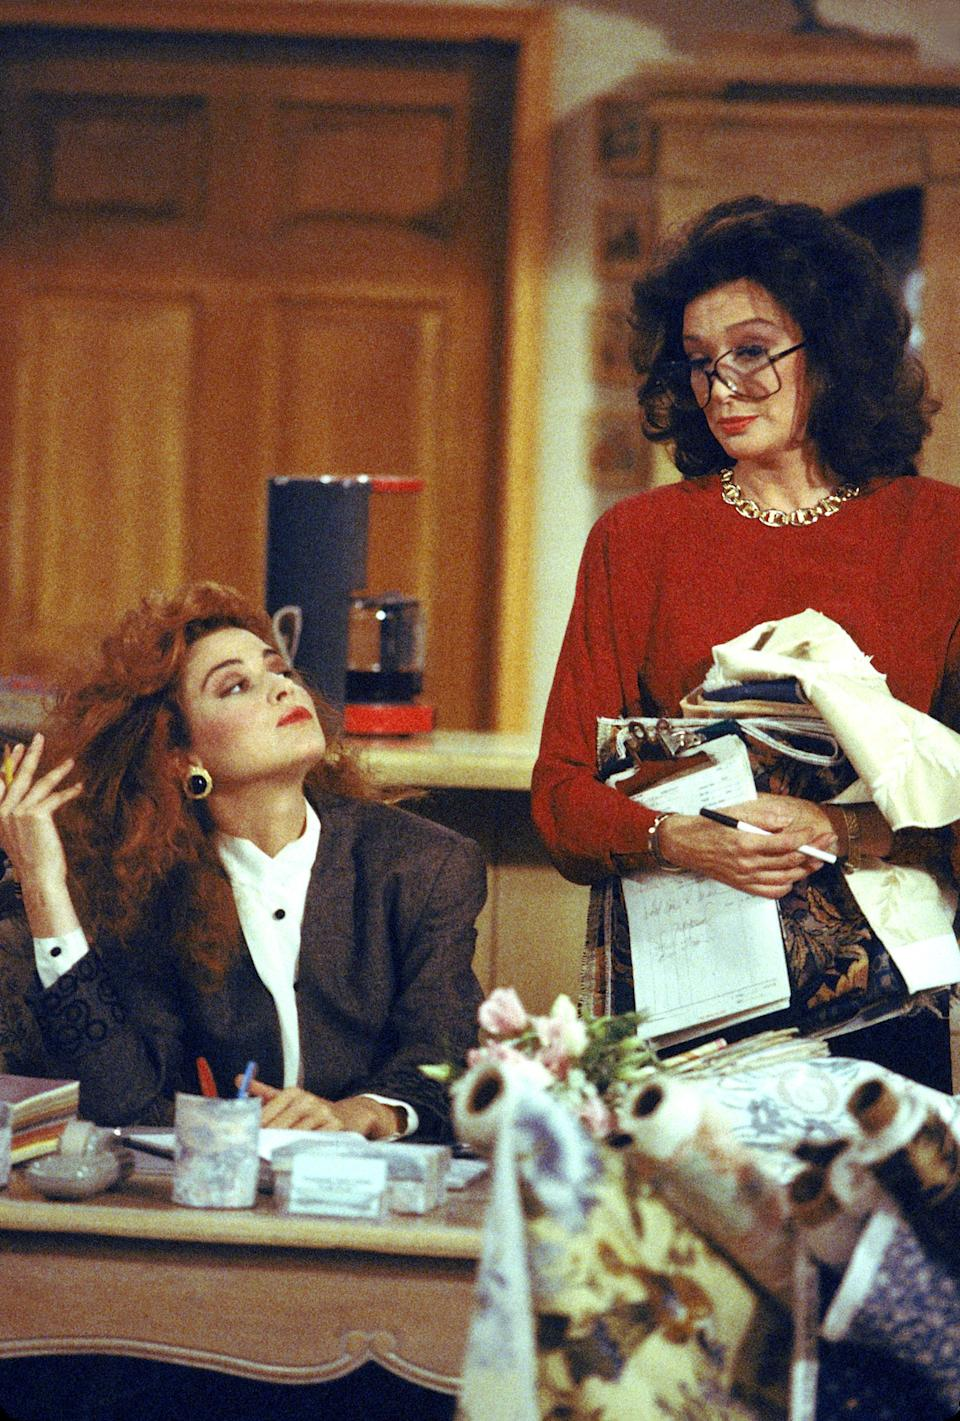 Mary Jo Shivley (Annie Potts) and Julia Sugarbaker (Dixie Carter) in Designing Women